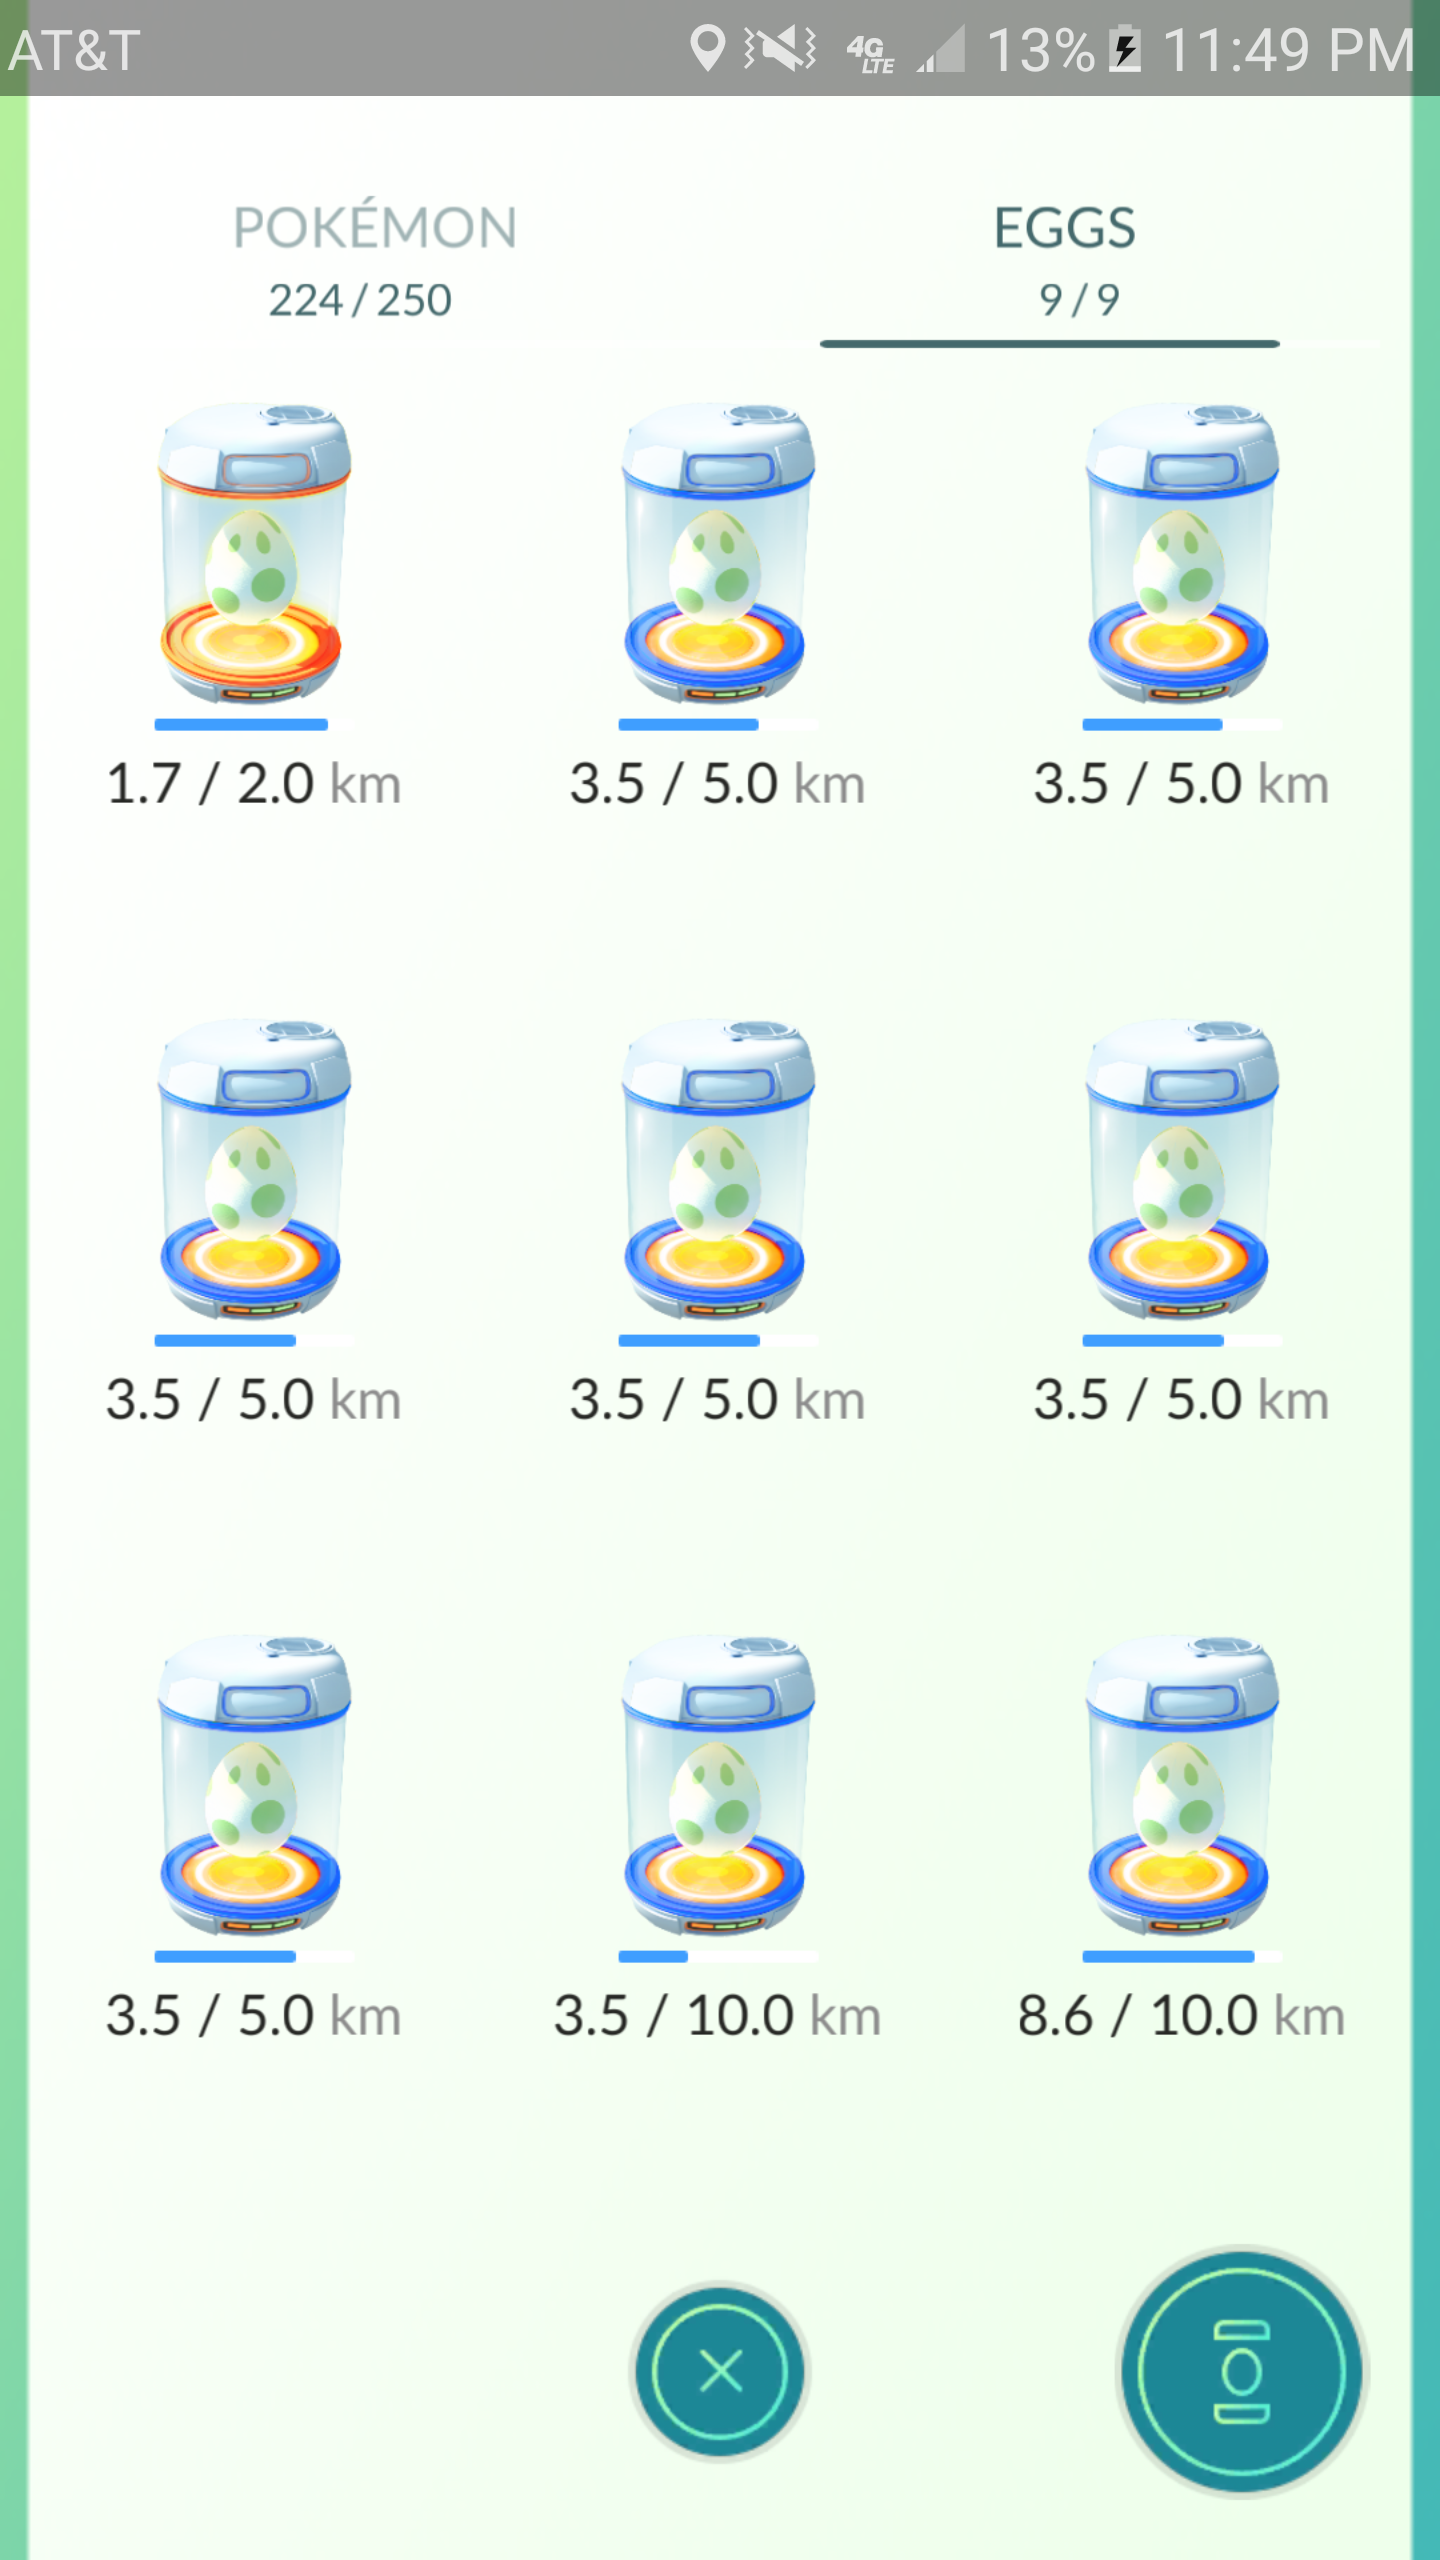 I incubated those 5km eggs in my room and I haven't even left.